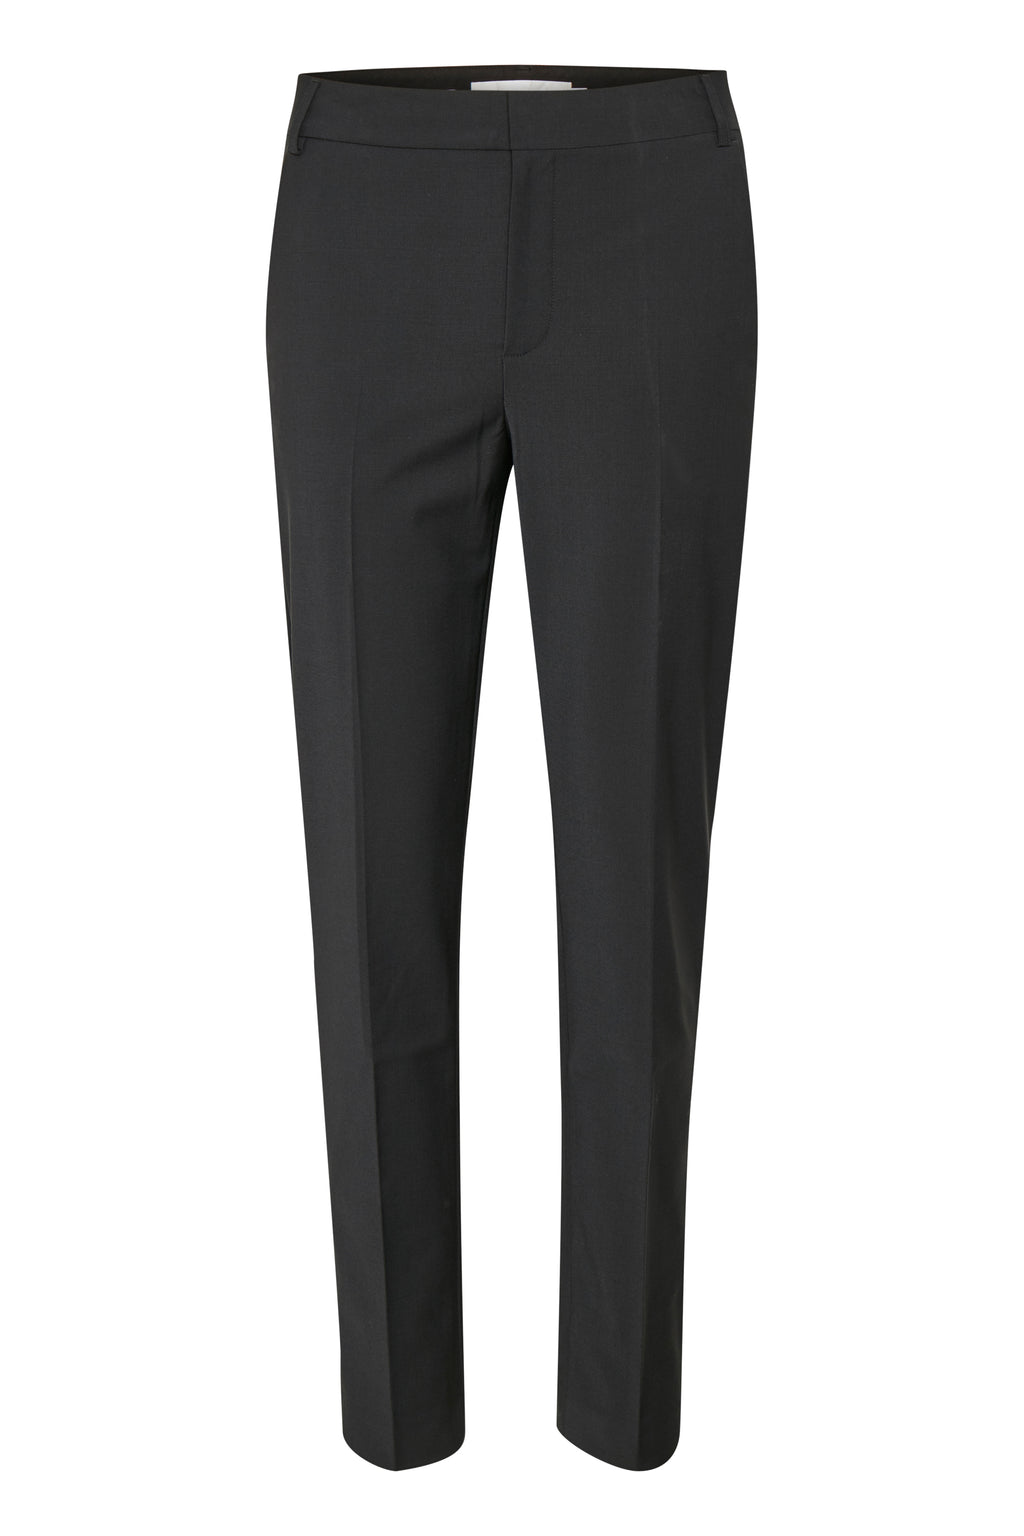 ZALA CIGARETTE PANTS - BLACK